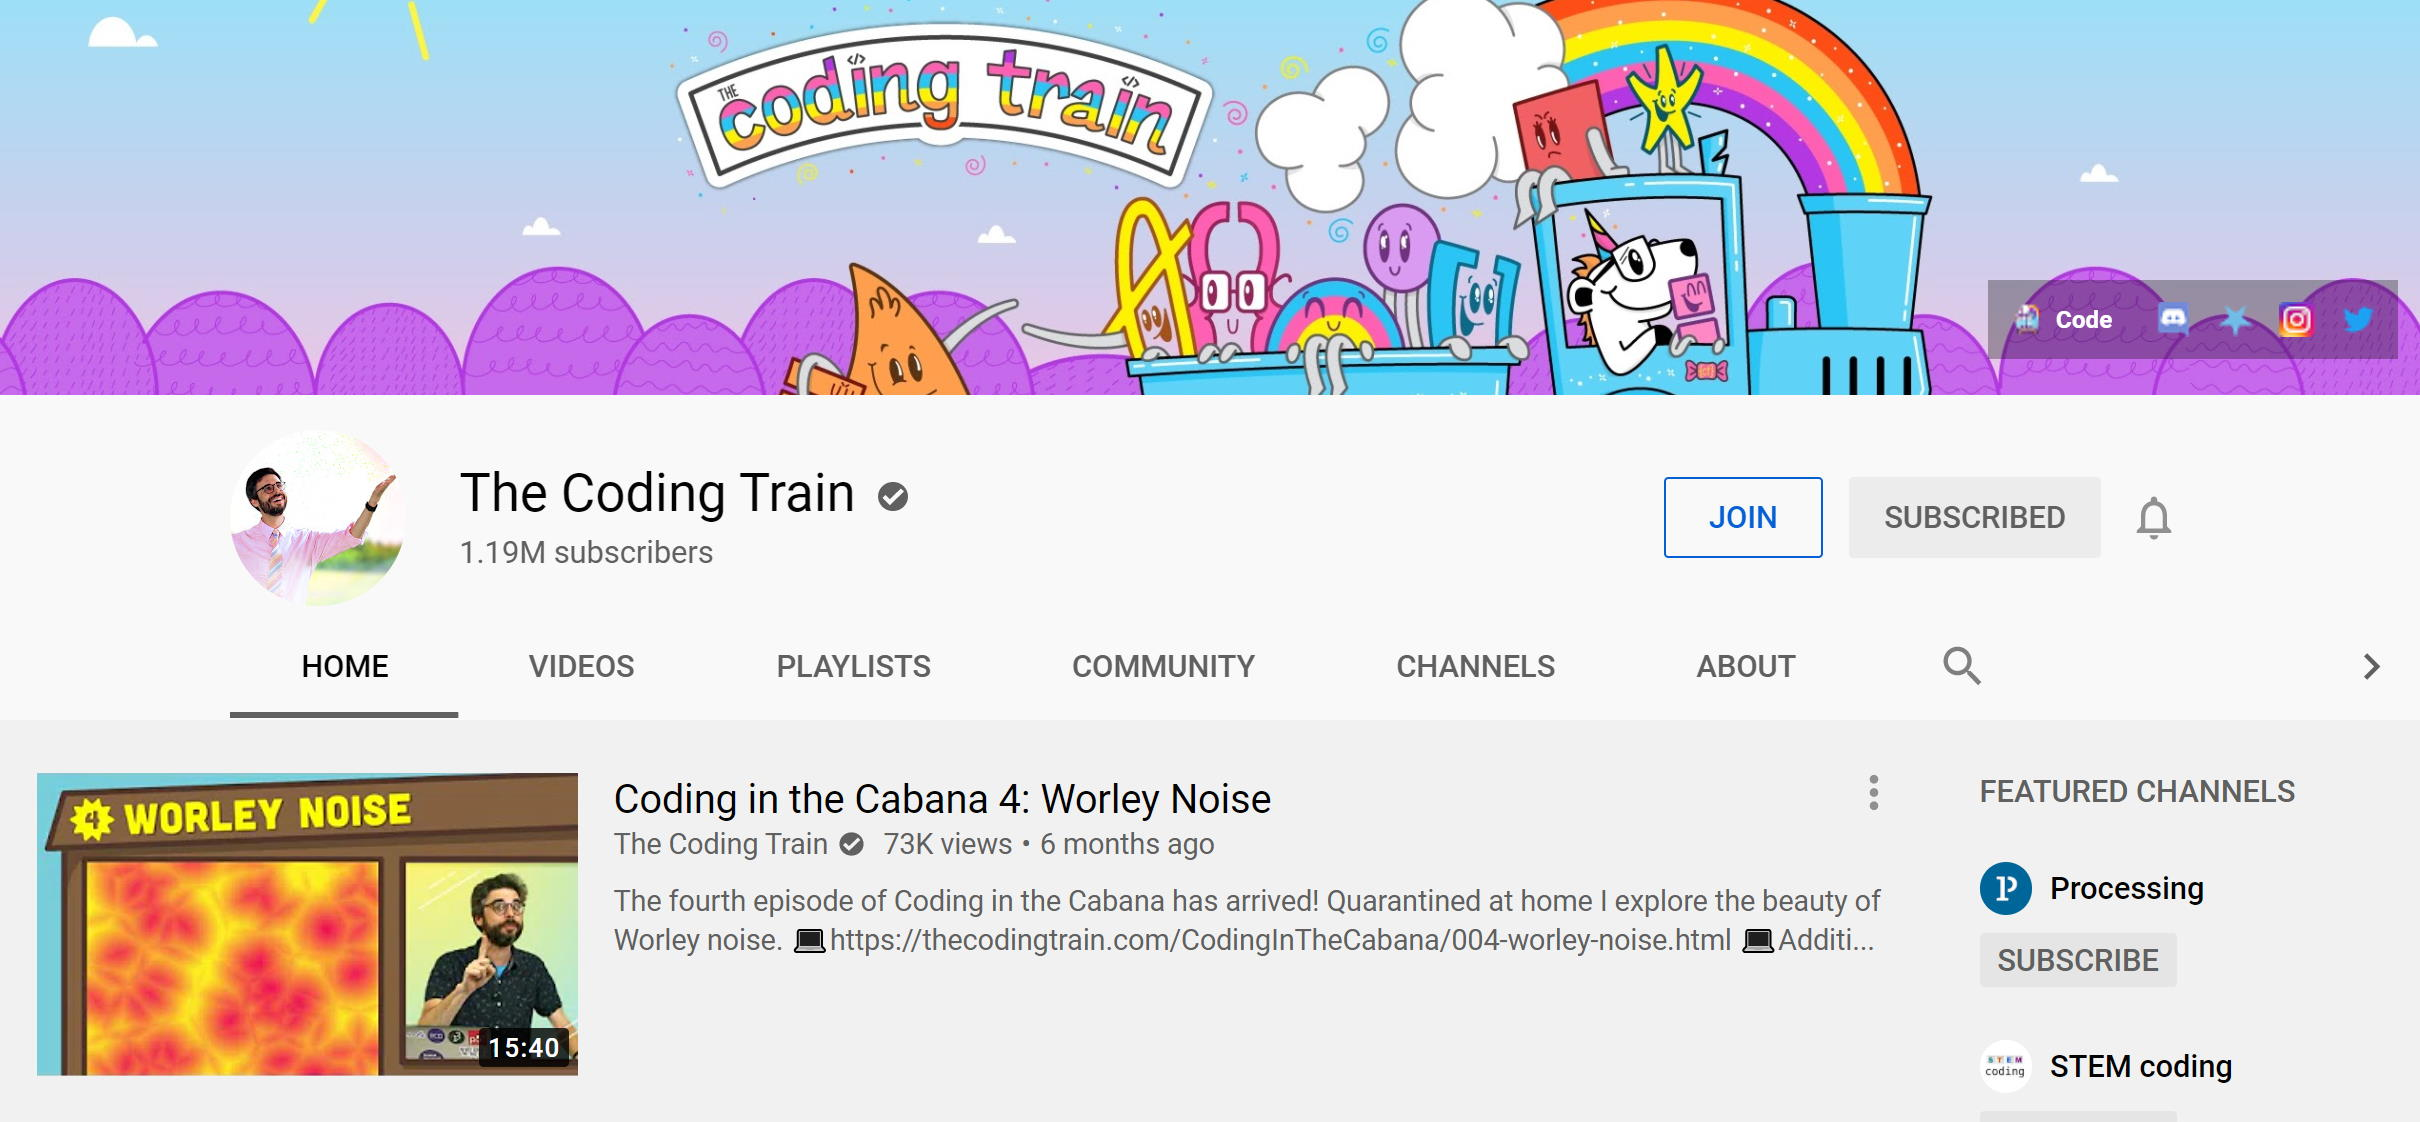 The Coding Train on YouTube